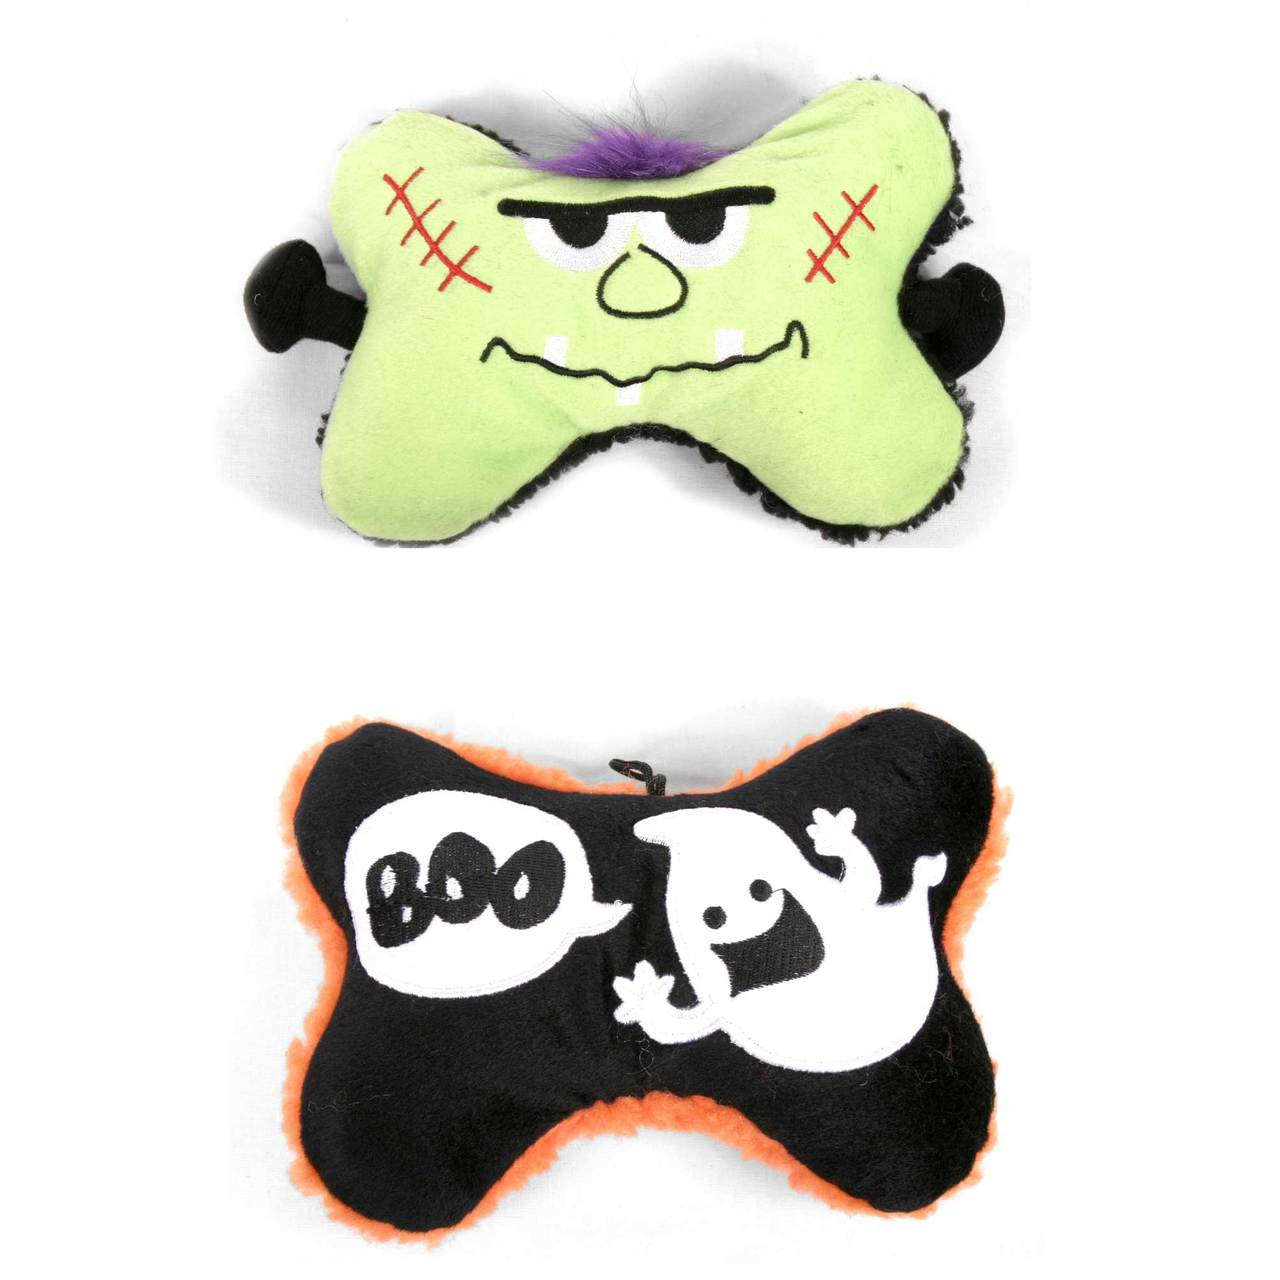 Halloween Squeaker Dog Toy 2 Pack 6776